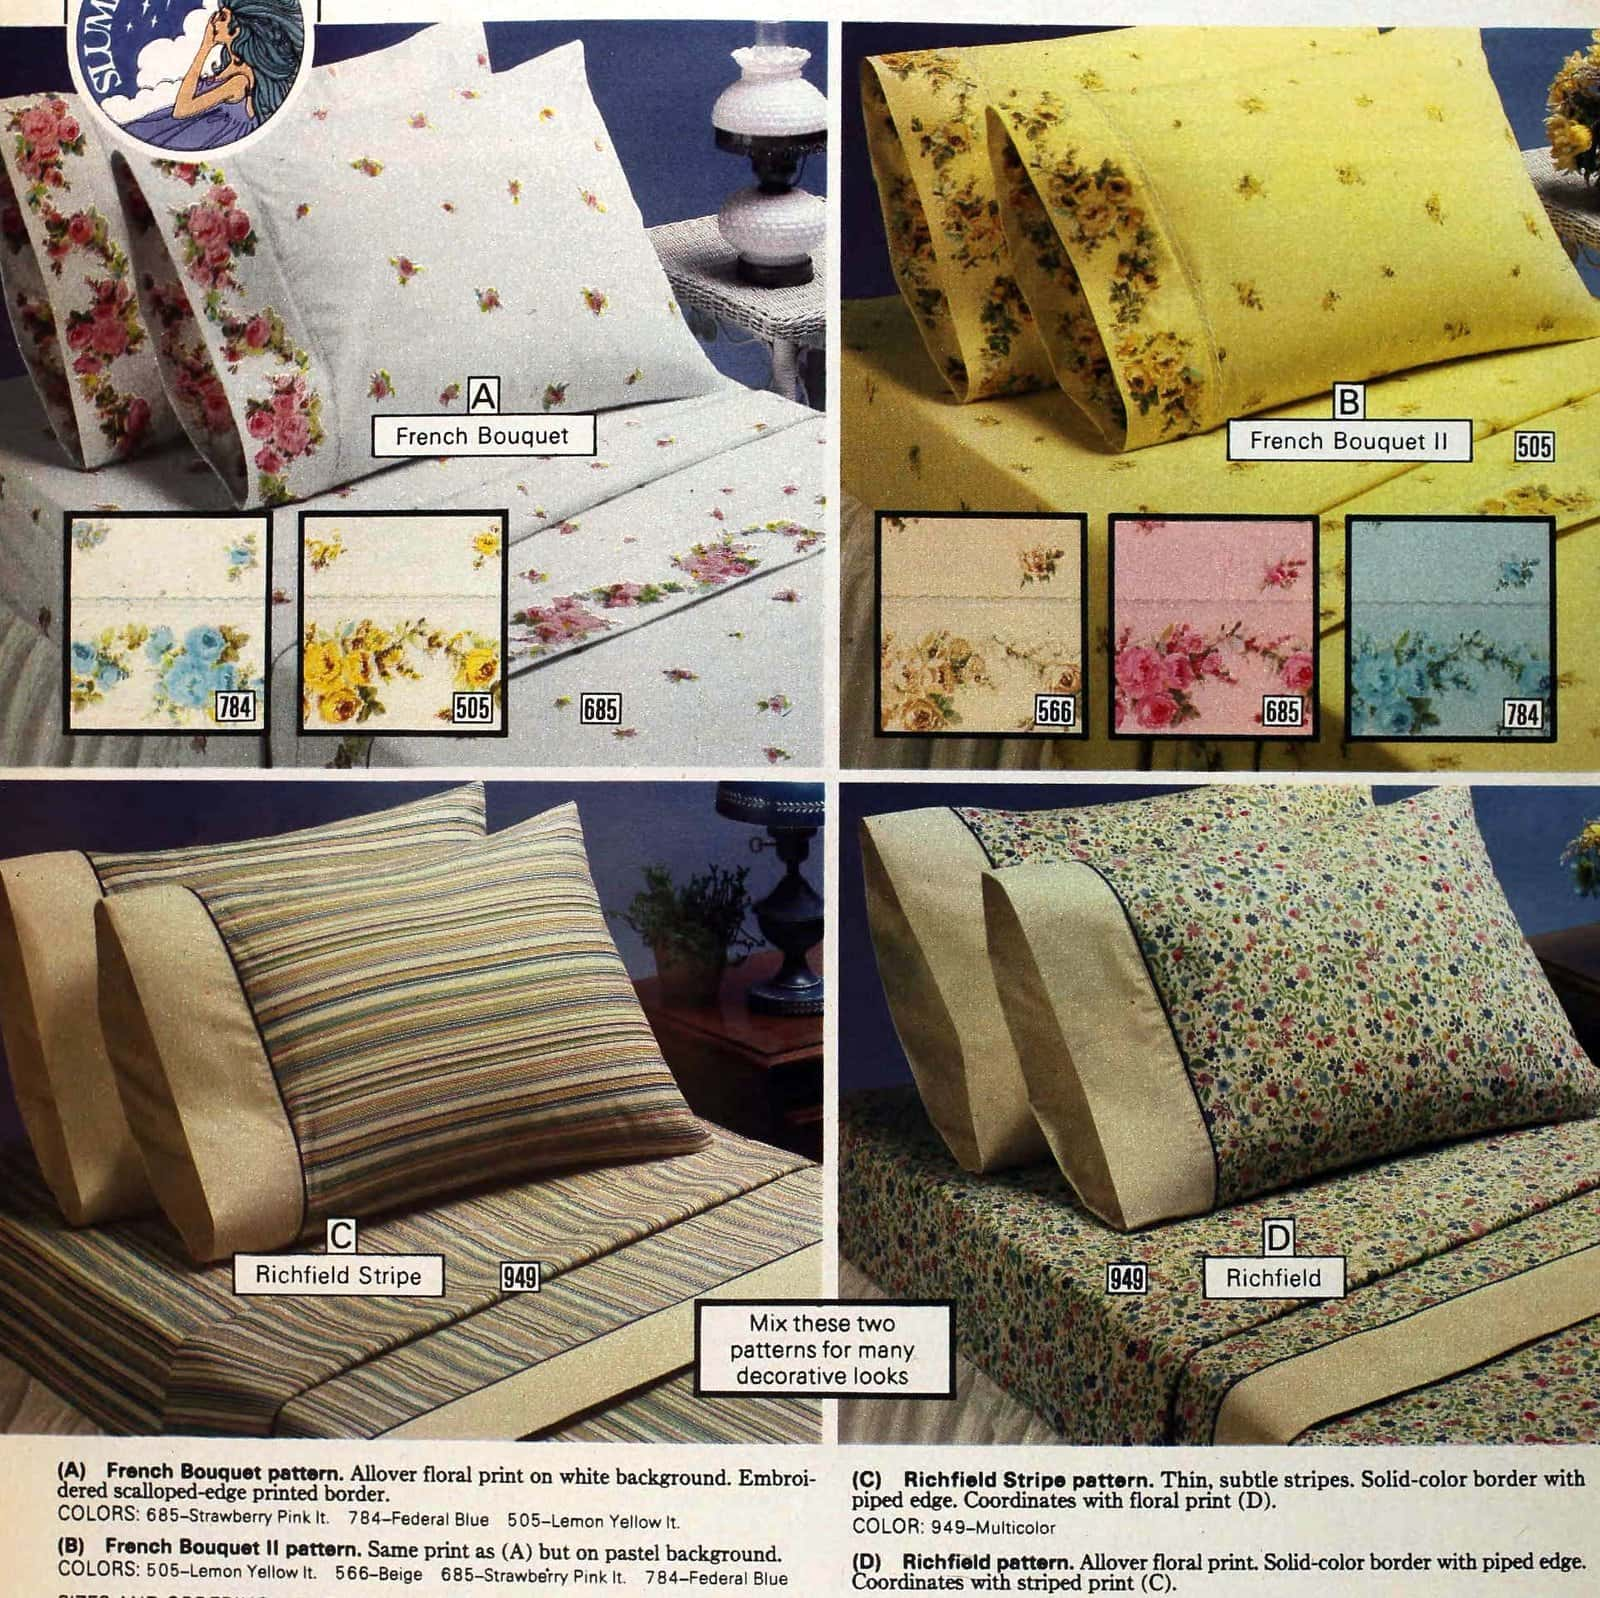 Classic French style floral and striped pattern sheets from the seventies